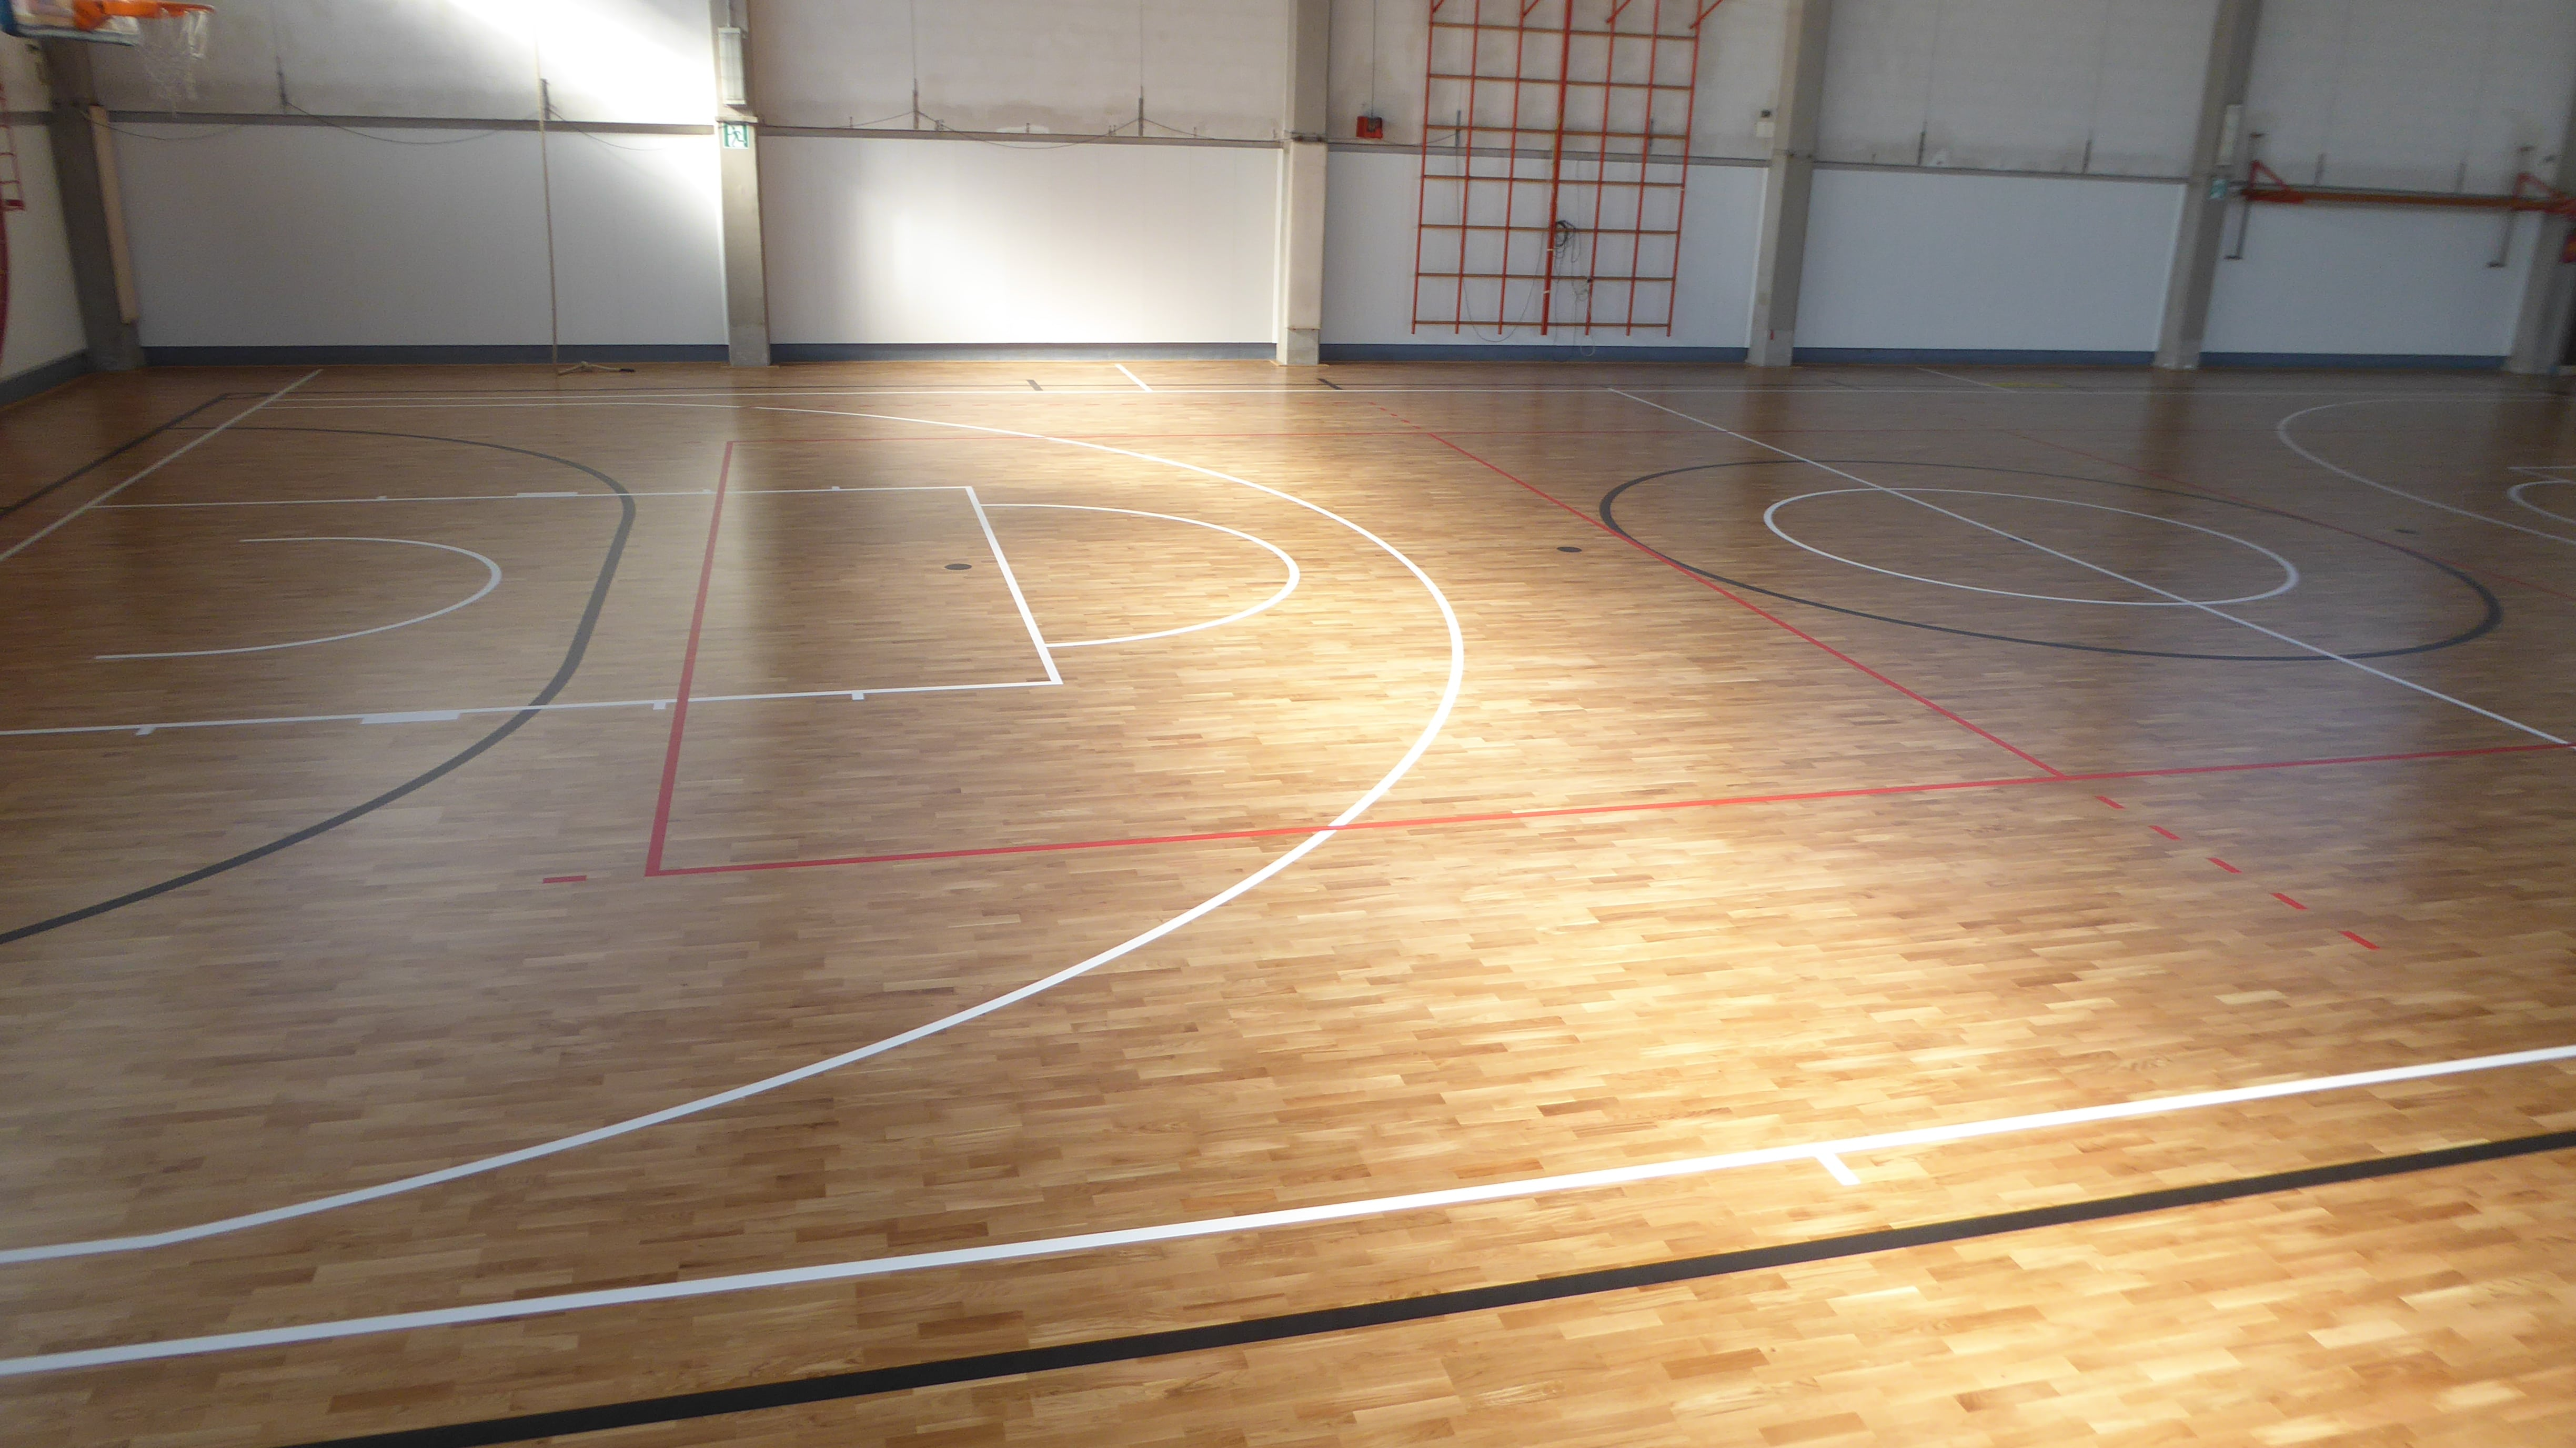 Basketball, volleyball and futsal on the new flooring